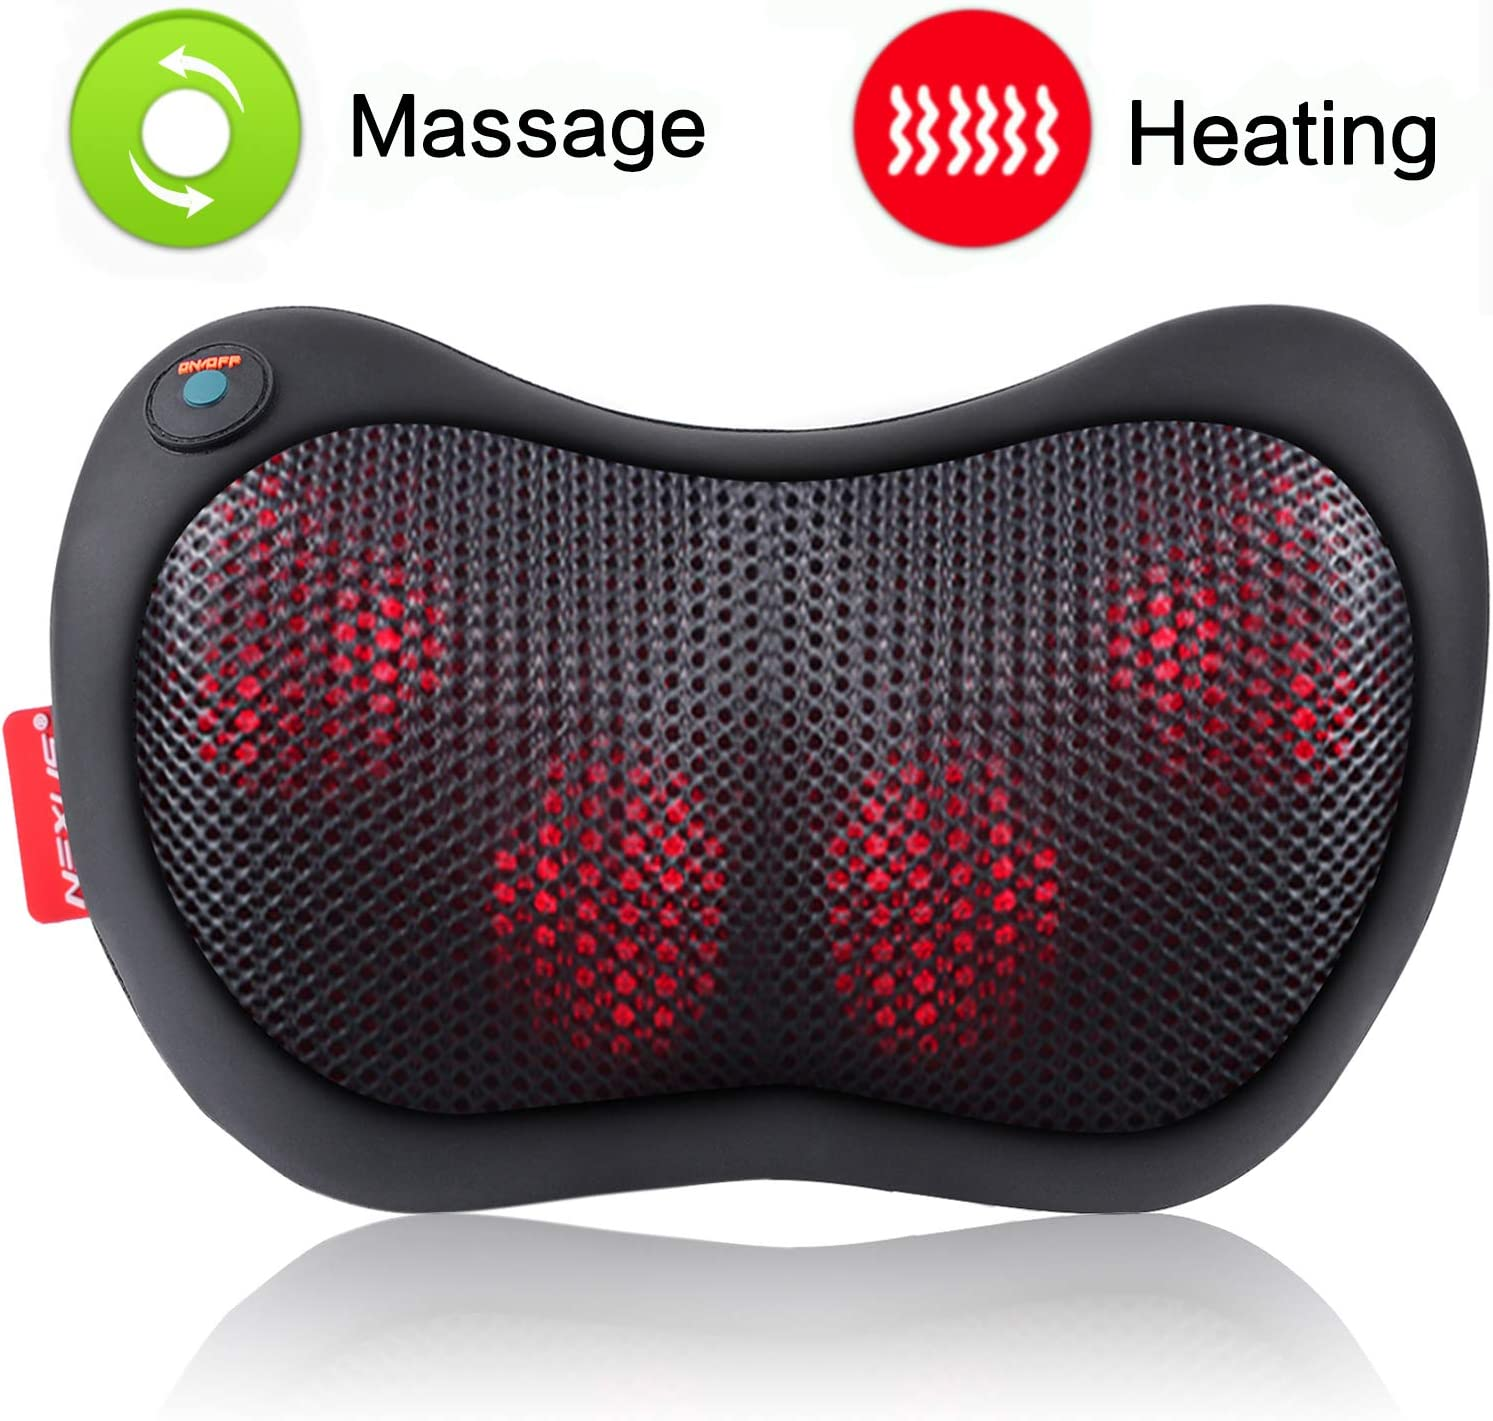 Neck Massager Pillow with Heat – Shiatsu Back and Shoulder Massager with Deep Tissue Kneading, Electric Back Massage for Full Body, Relaxation at Home, Car Office